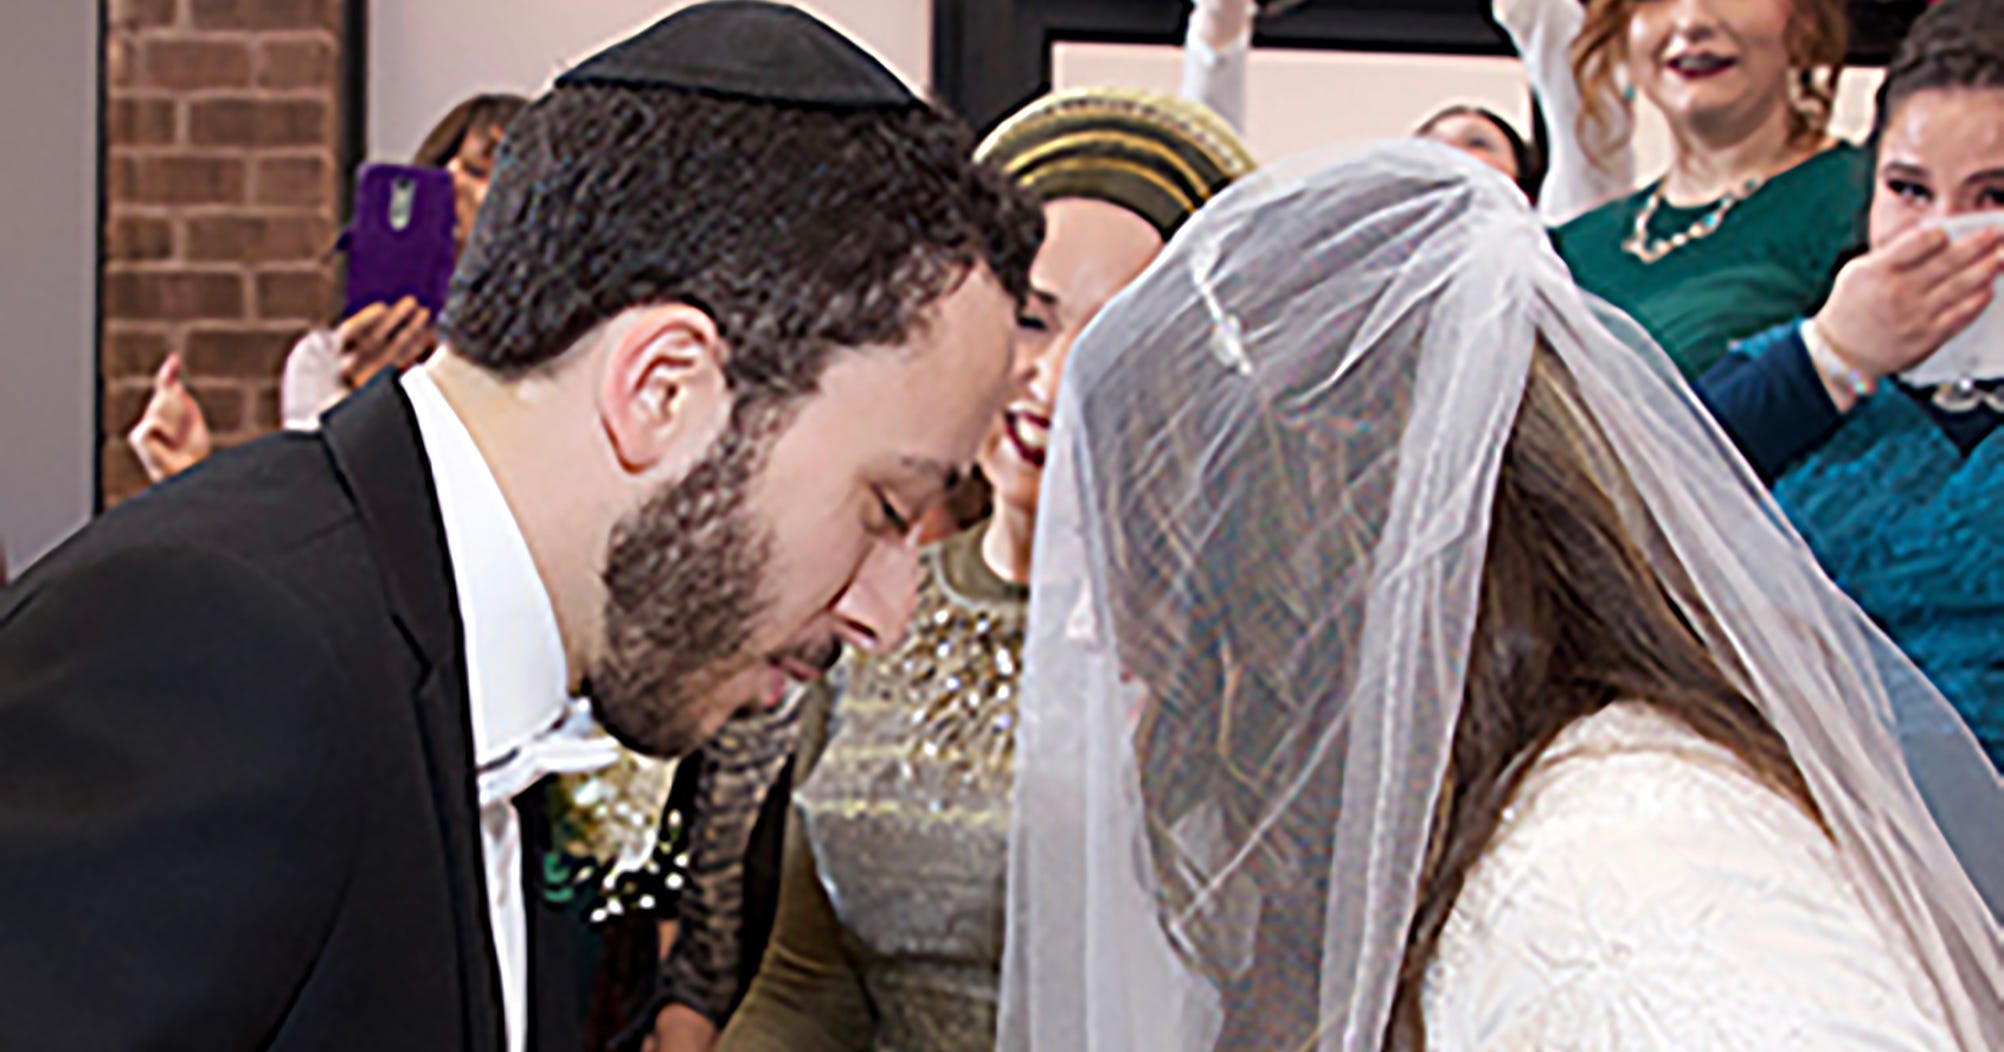 bee branch jewish singles Jewornotjewcom: is b&h photo video jewish man: hey, did you know that b&h photo video store in new york city was owned, run, and employed by orthodox jews.